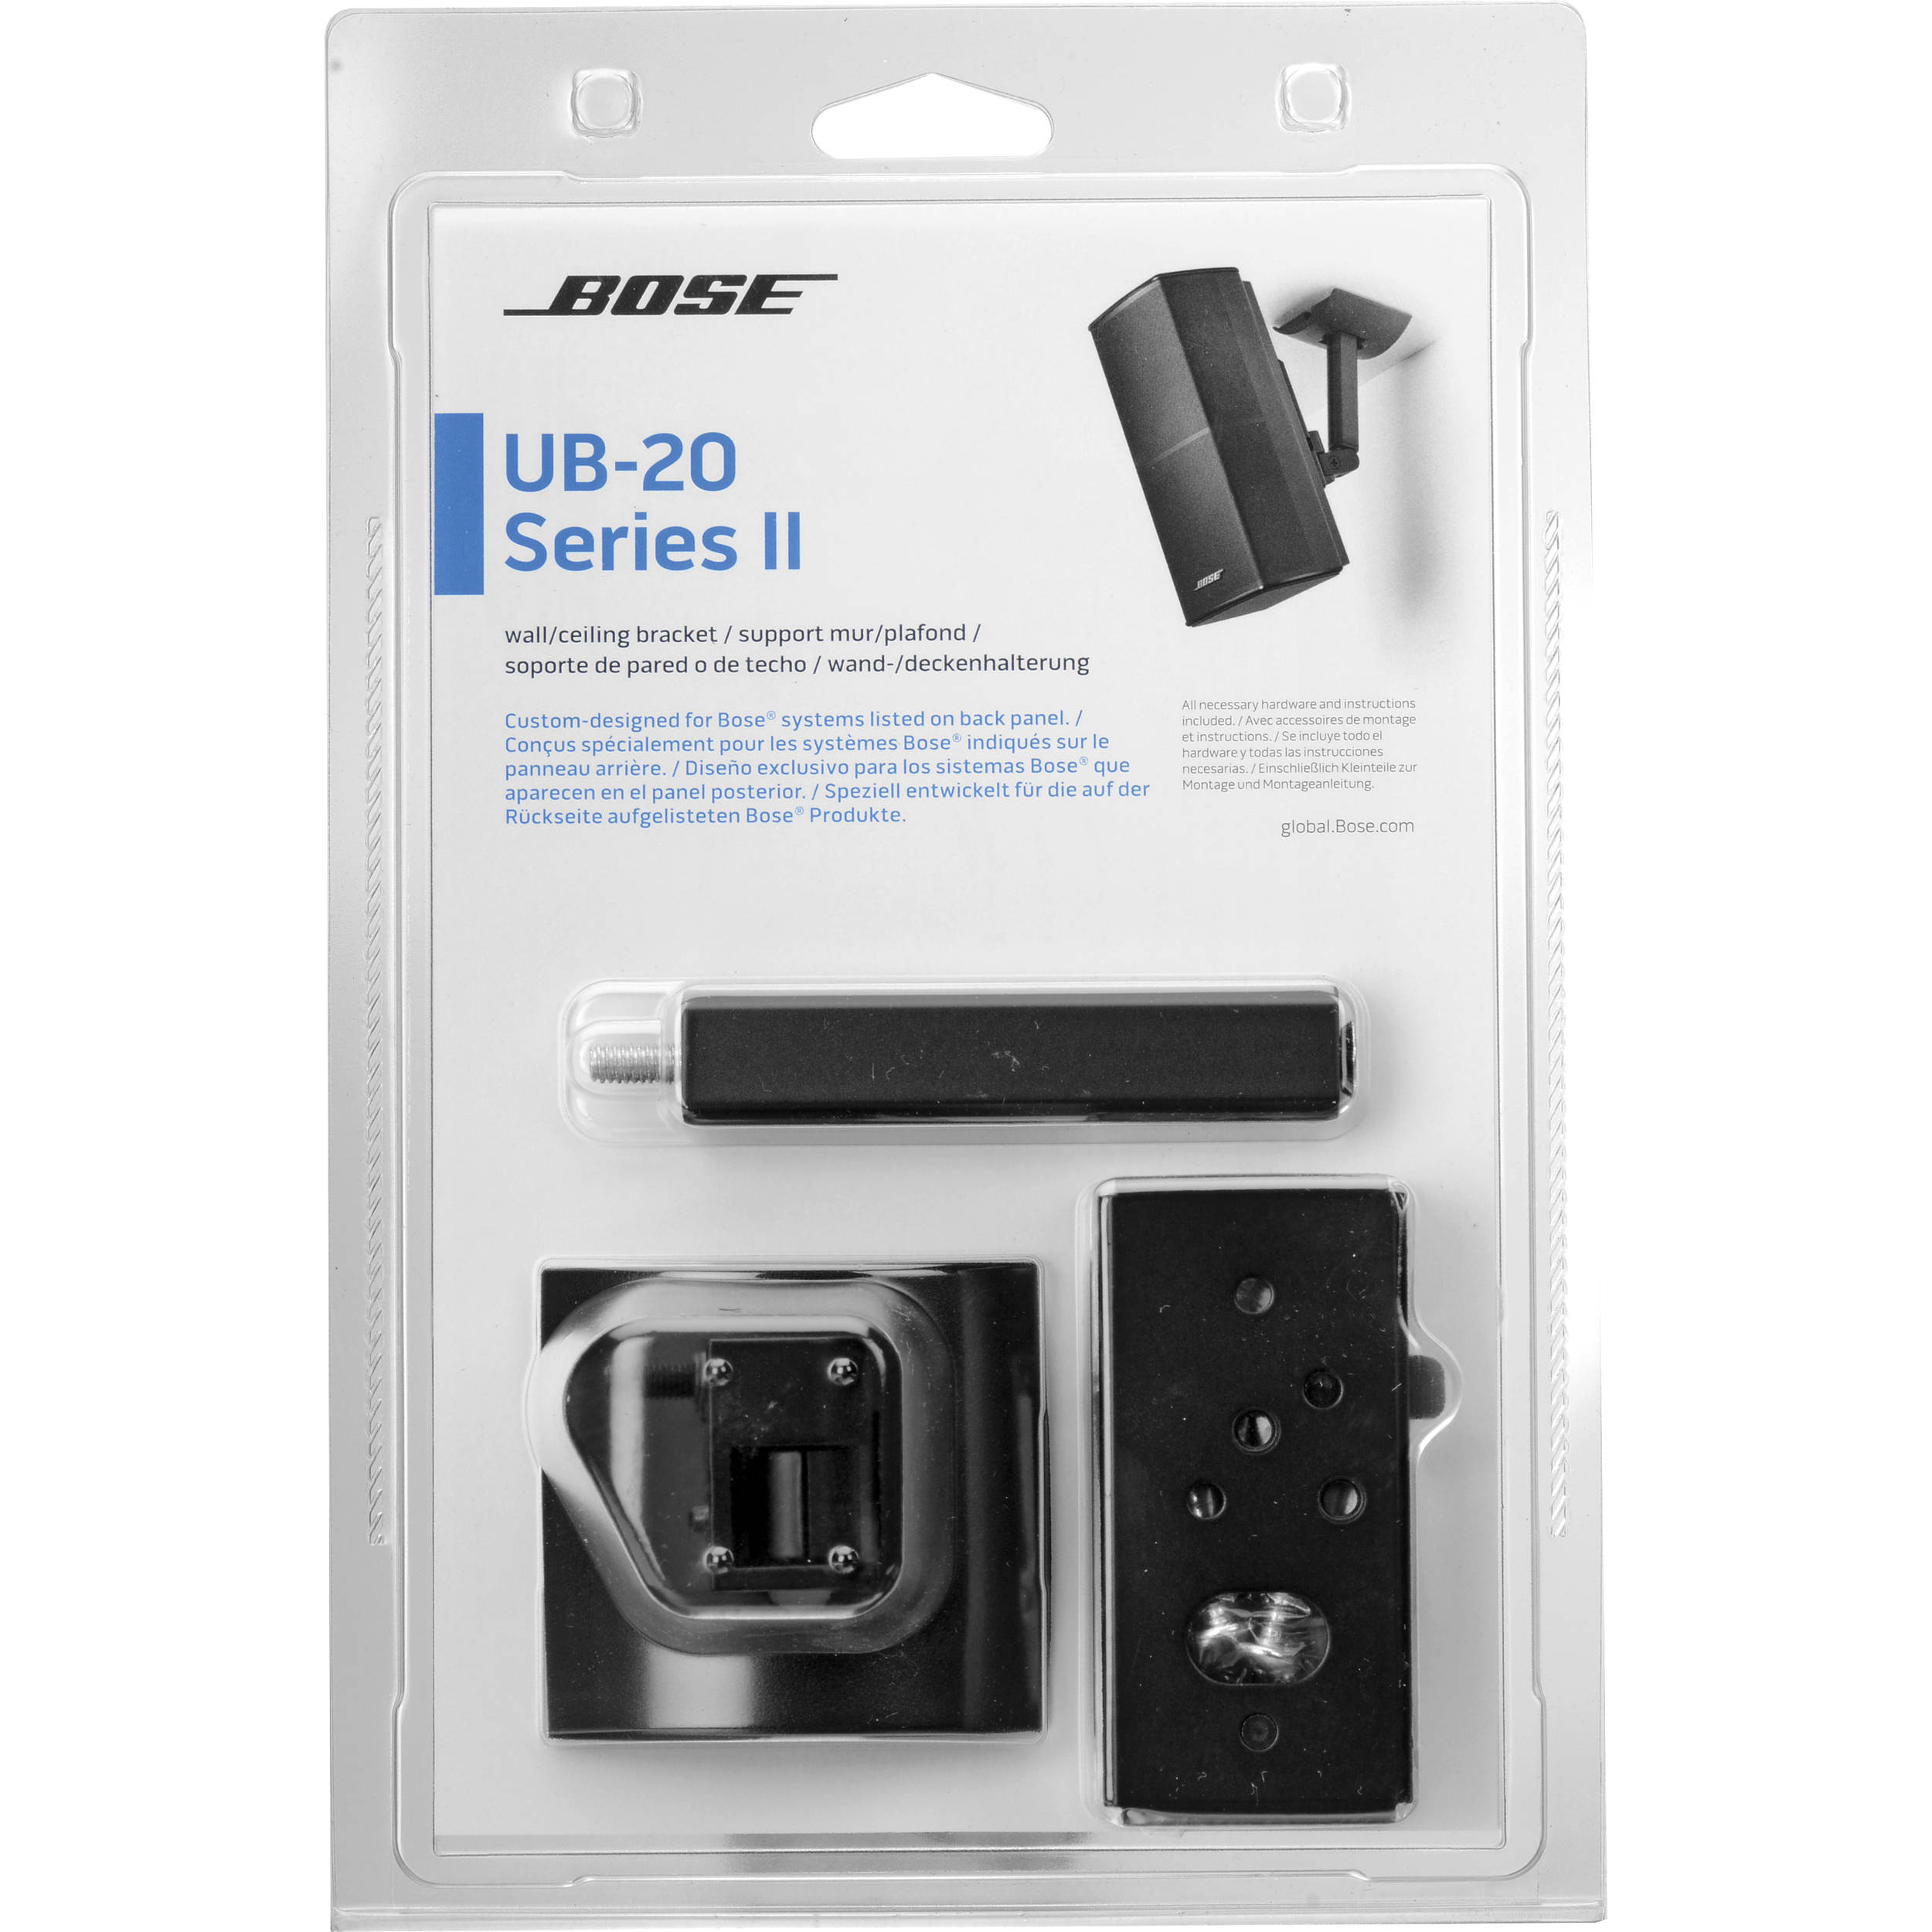 Bose UB-20 Series II Wall/Ceiling Bracket (Black)